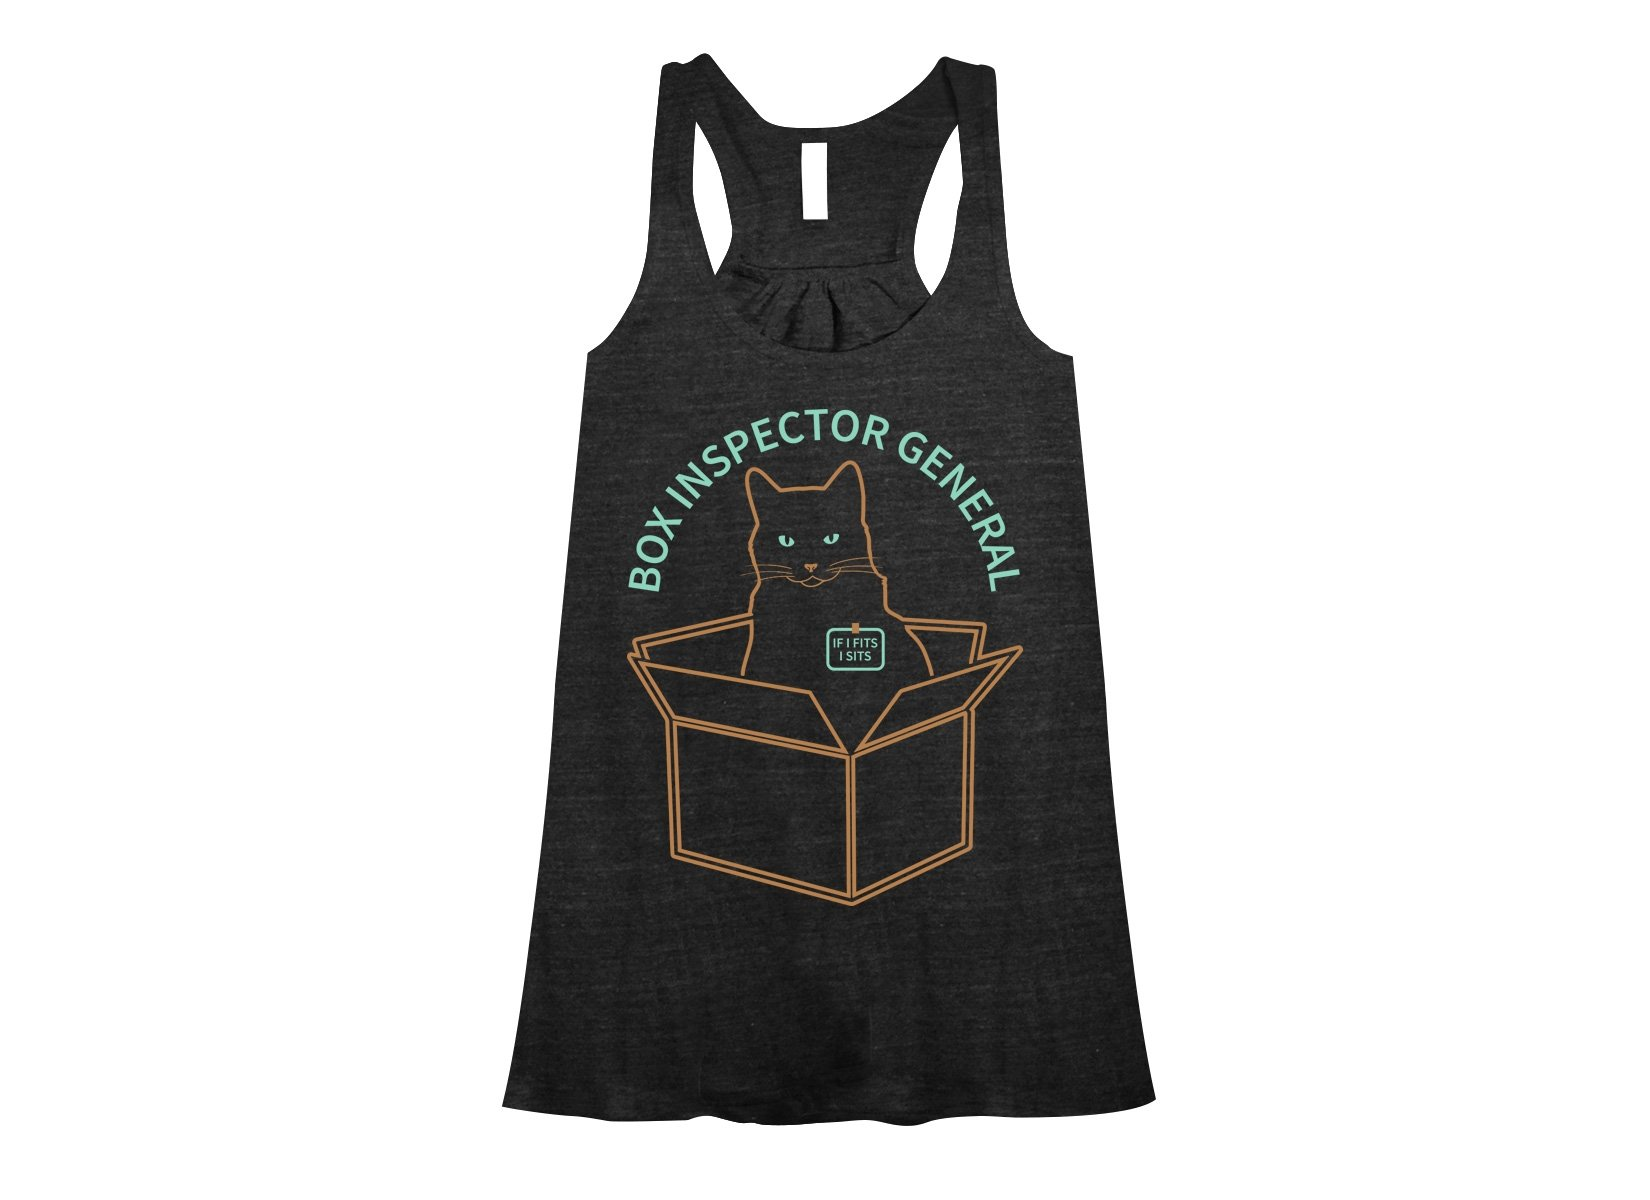 Box Inspector General on Womens Tanks T-Shirt